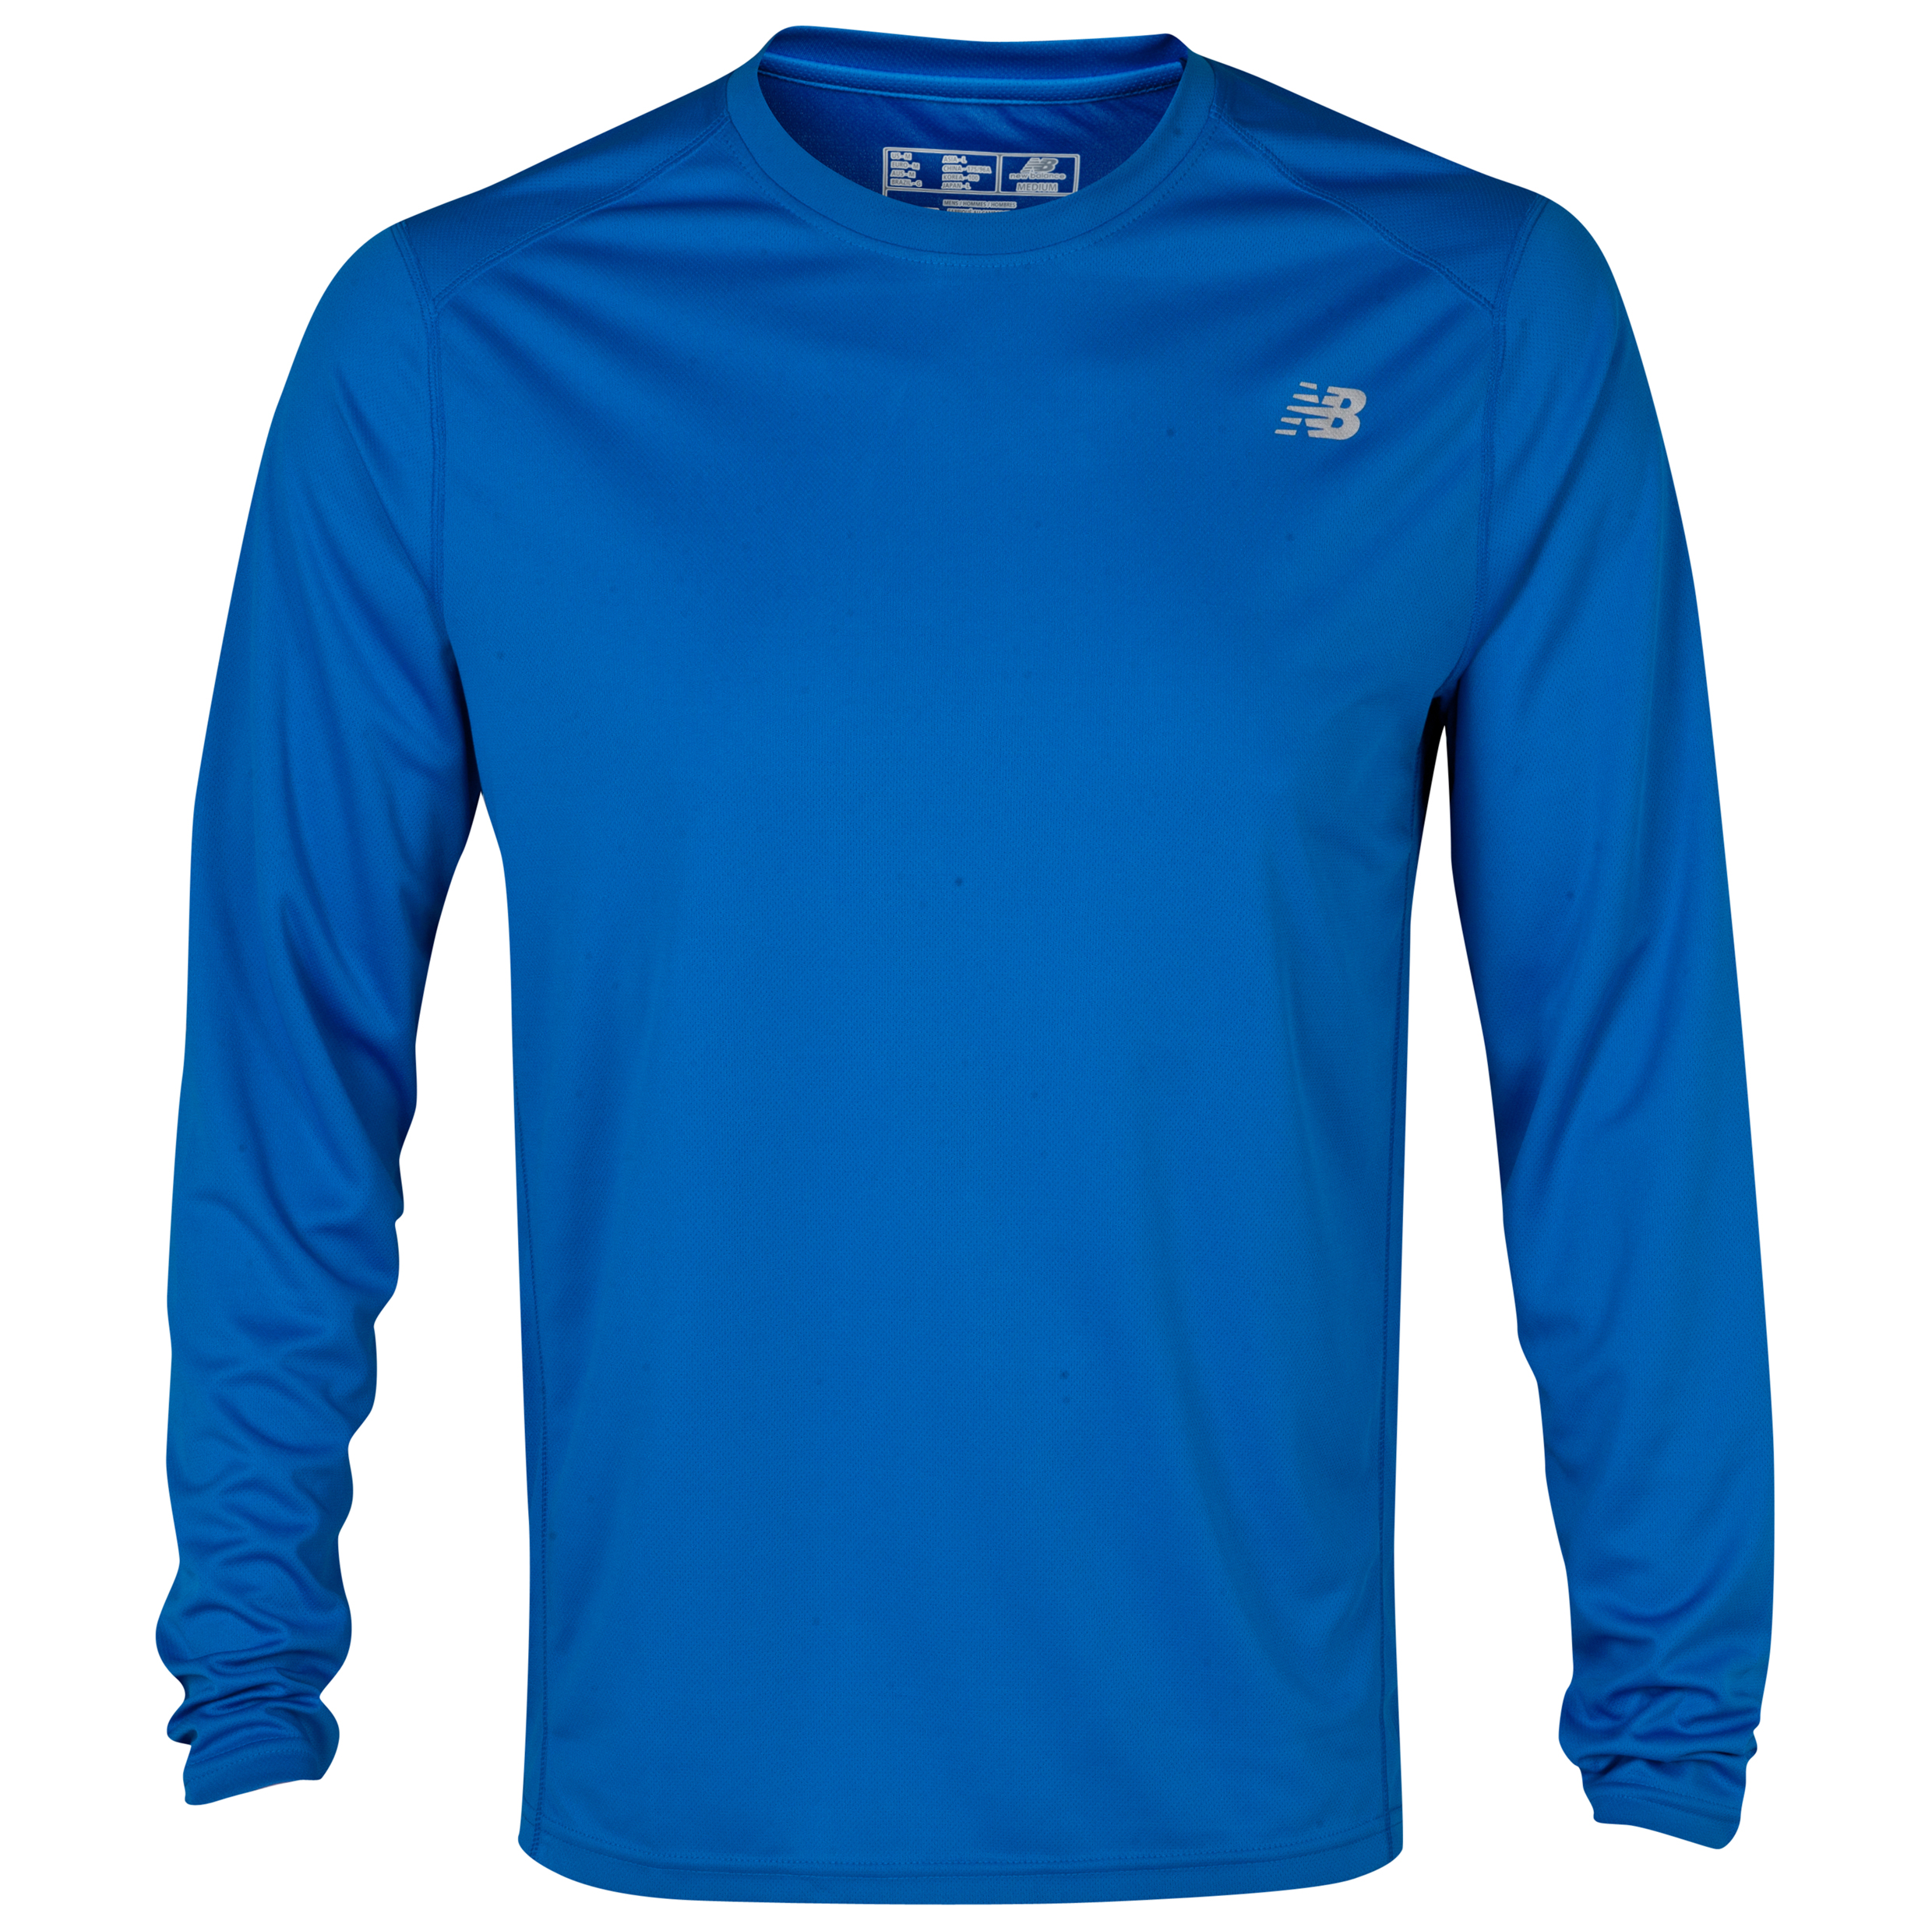 New Balance Go 2 Long Sleeve Top - Vision Blue